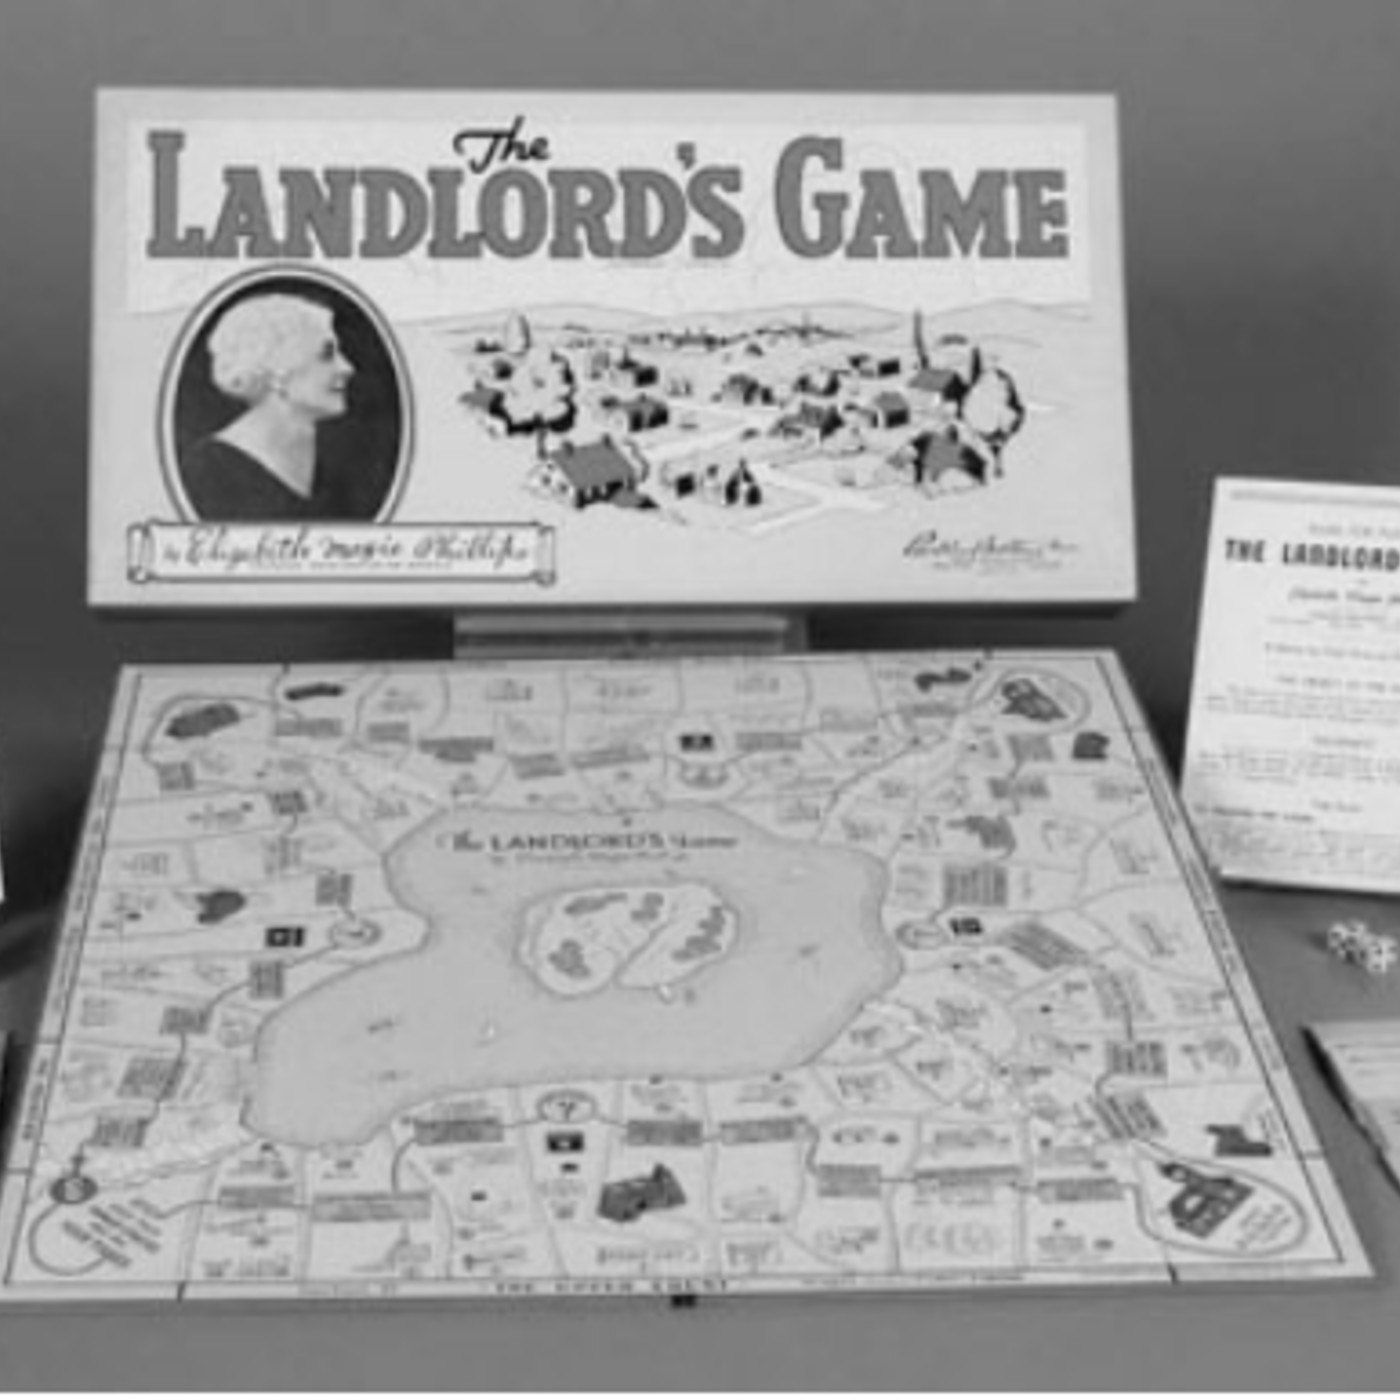 379 - The Landlord's Game